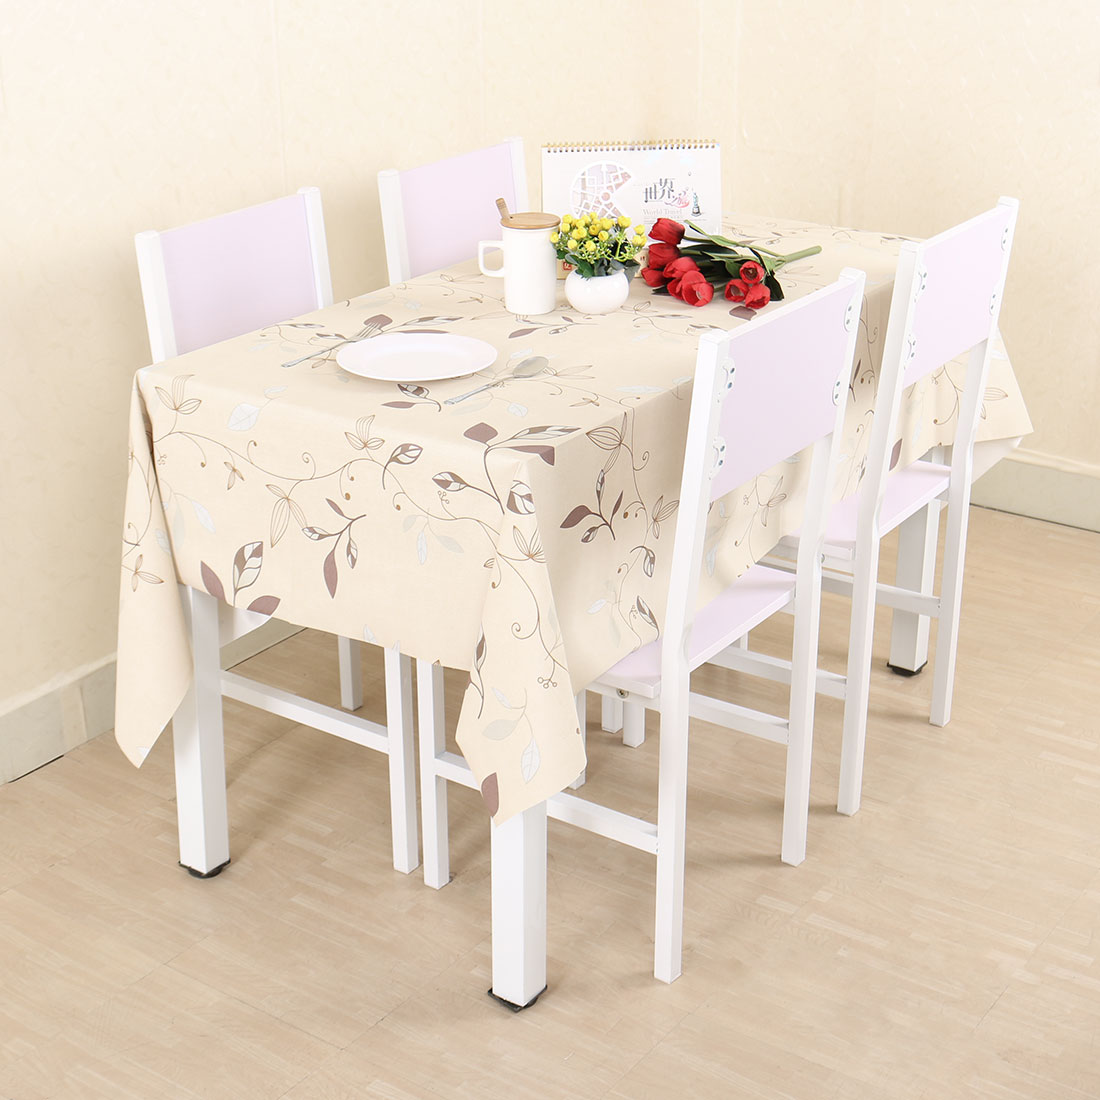 Walmart & Autumn Leaves Printed Wipe Clean PVC Vinyl Tablecloth Pioneer Woman Table Cover For Rectangular Tables